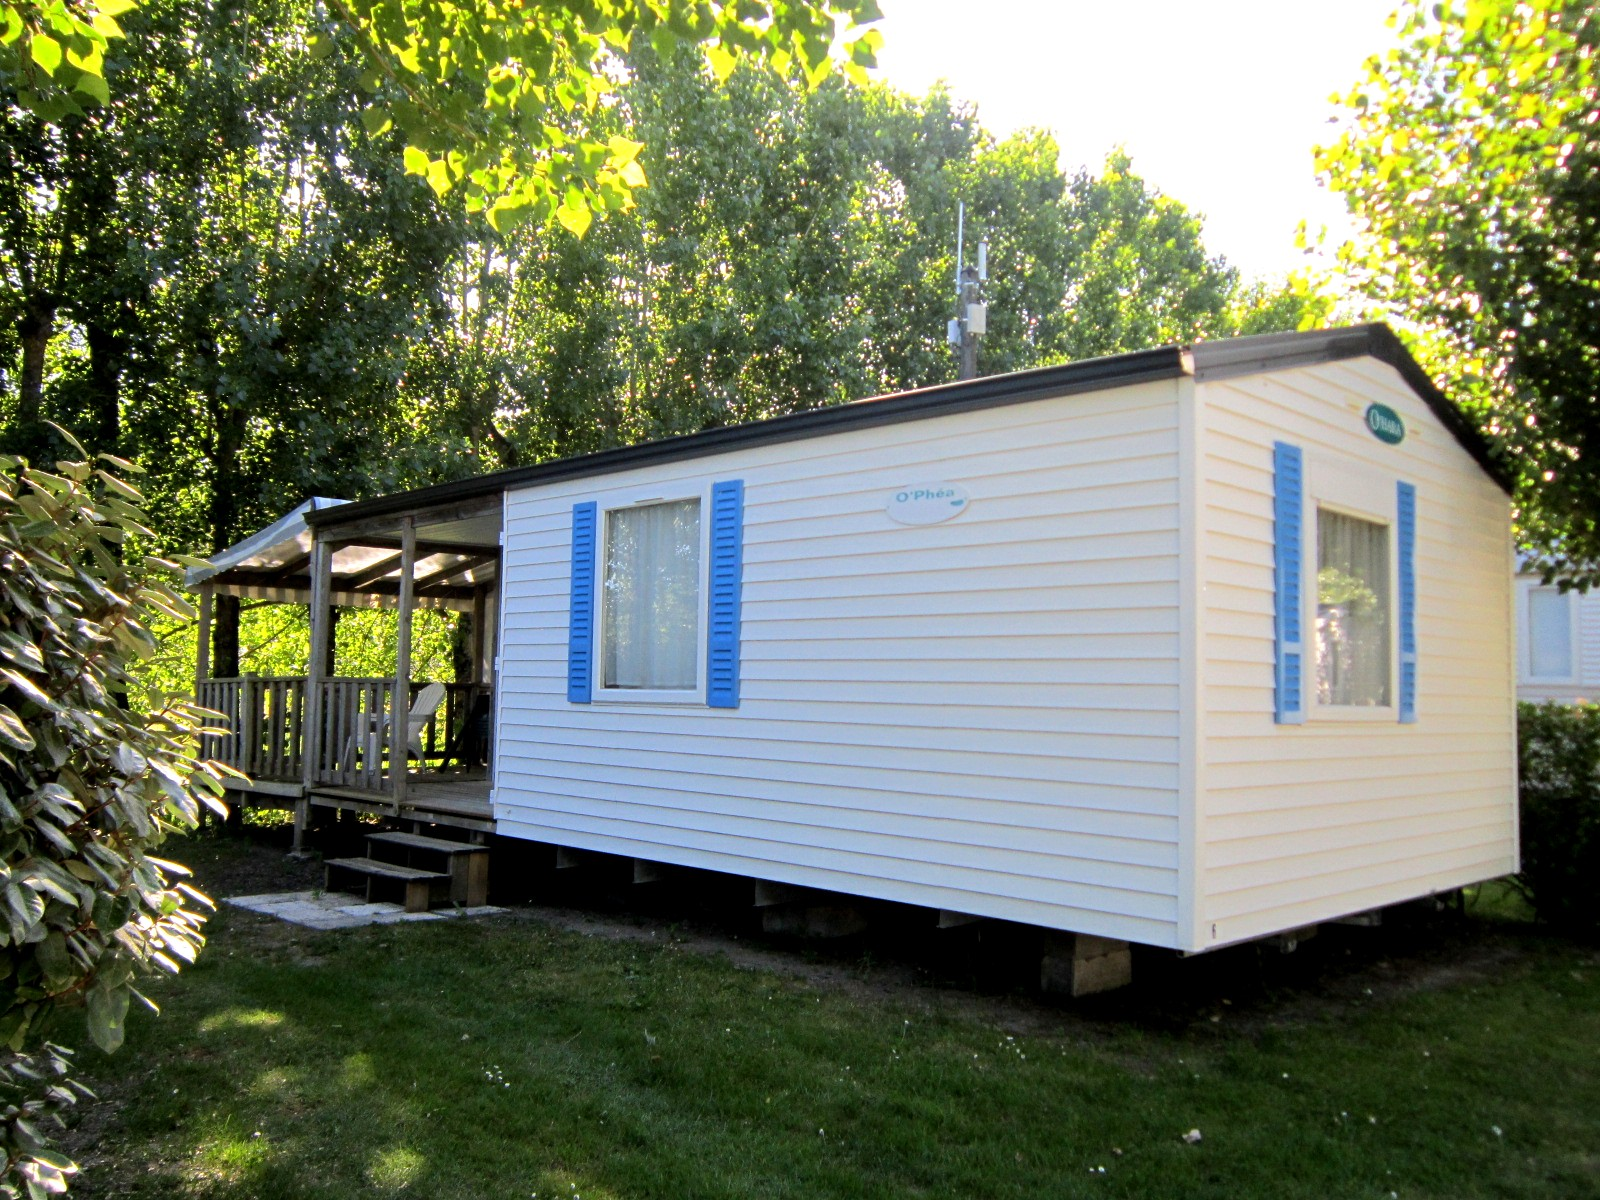 Vente mobil-home camping le perrier